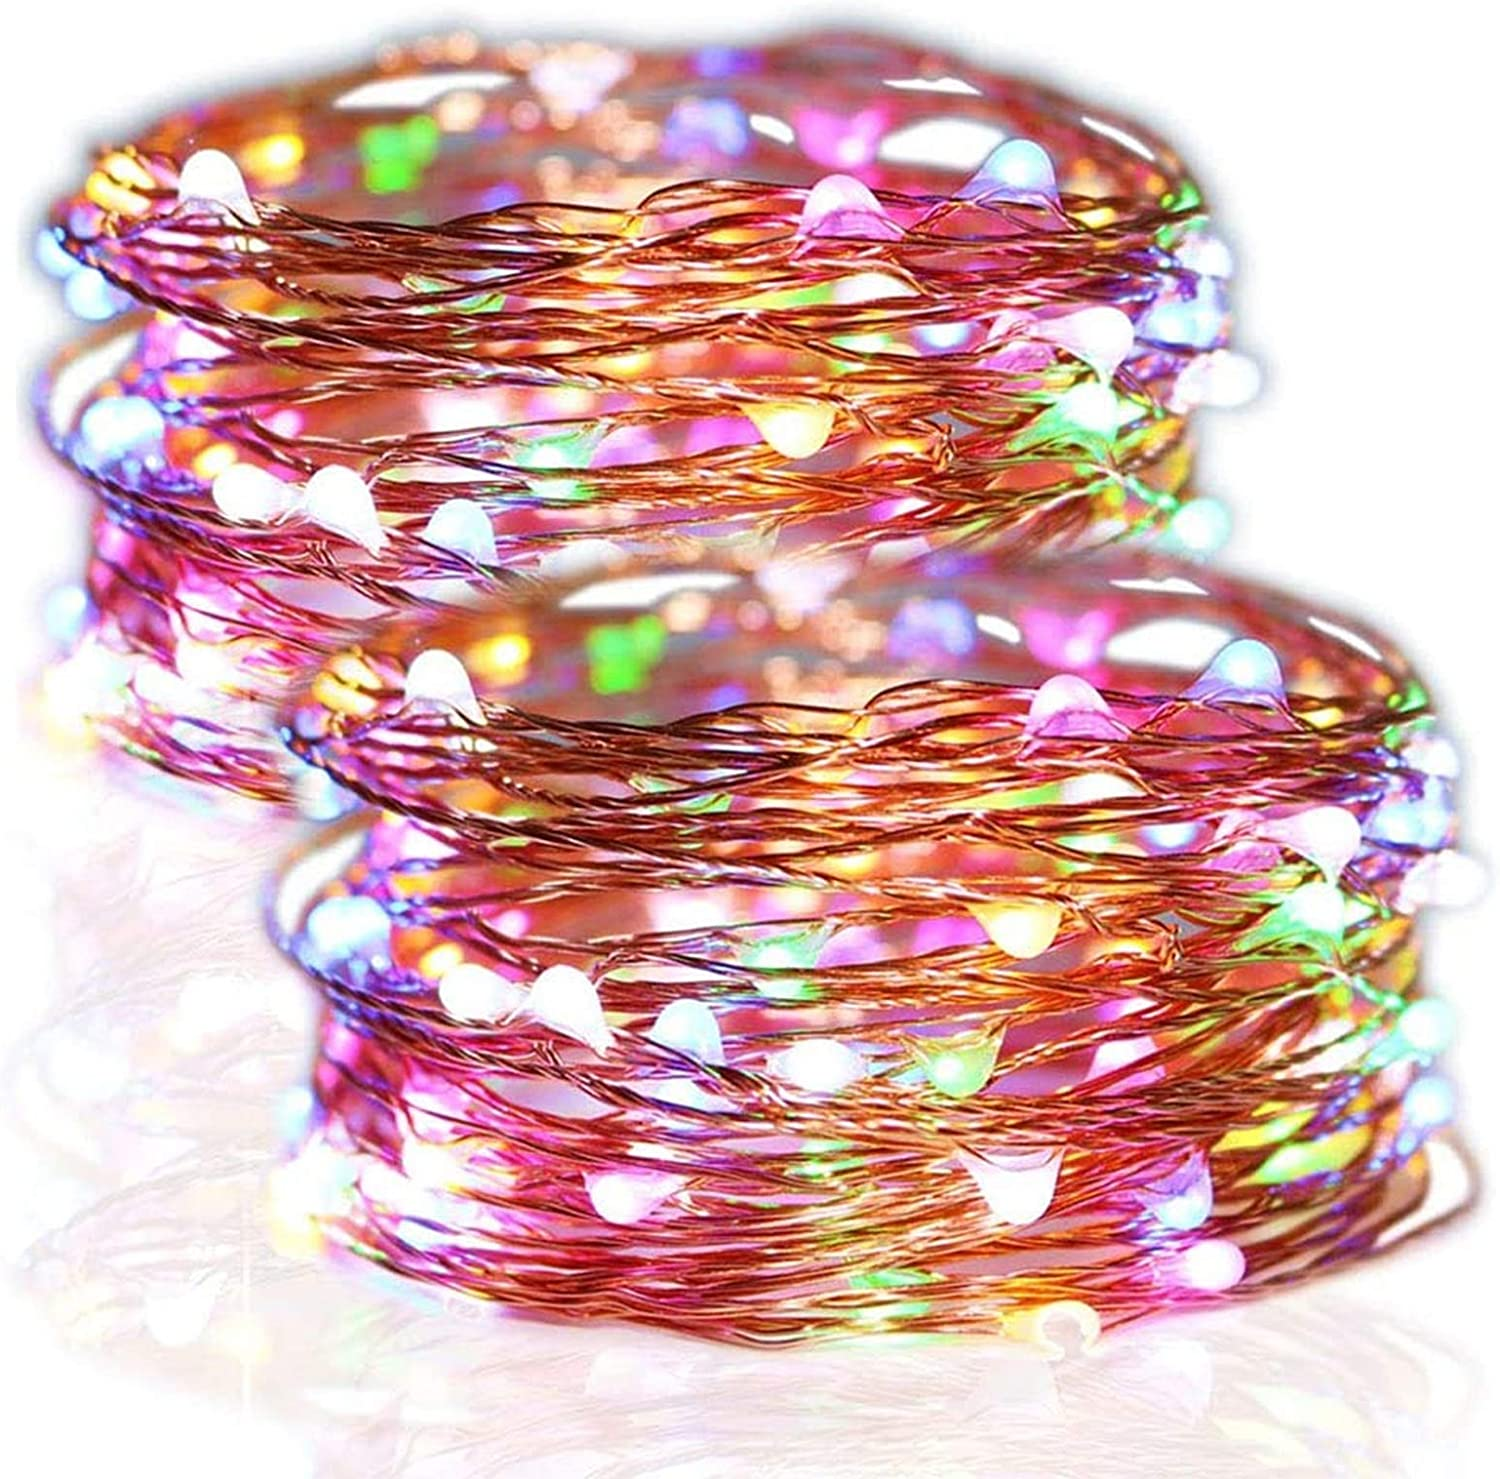 Twinkle Star 100 LED Copper Wire String Lights, 33ft Battery Operated Indoor Fairy String Lights, Holiday Decorative Wreath Christmas Tree Wedding Party Decoration (2 Pack, Multicolor)